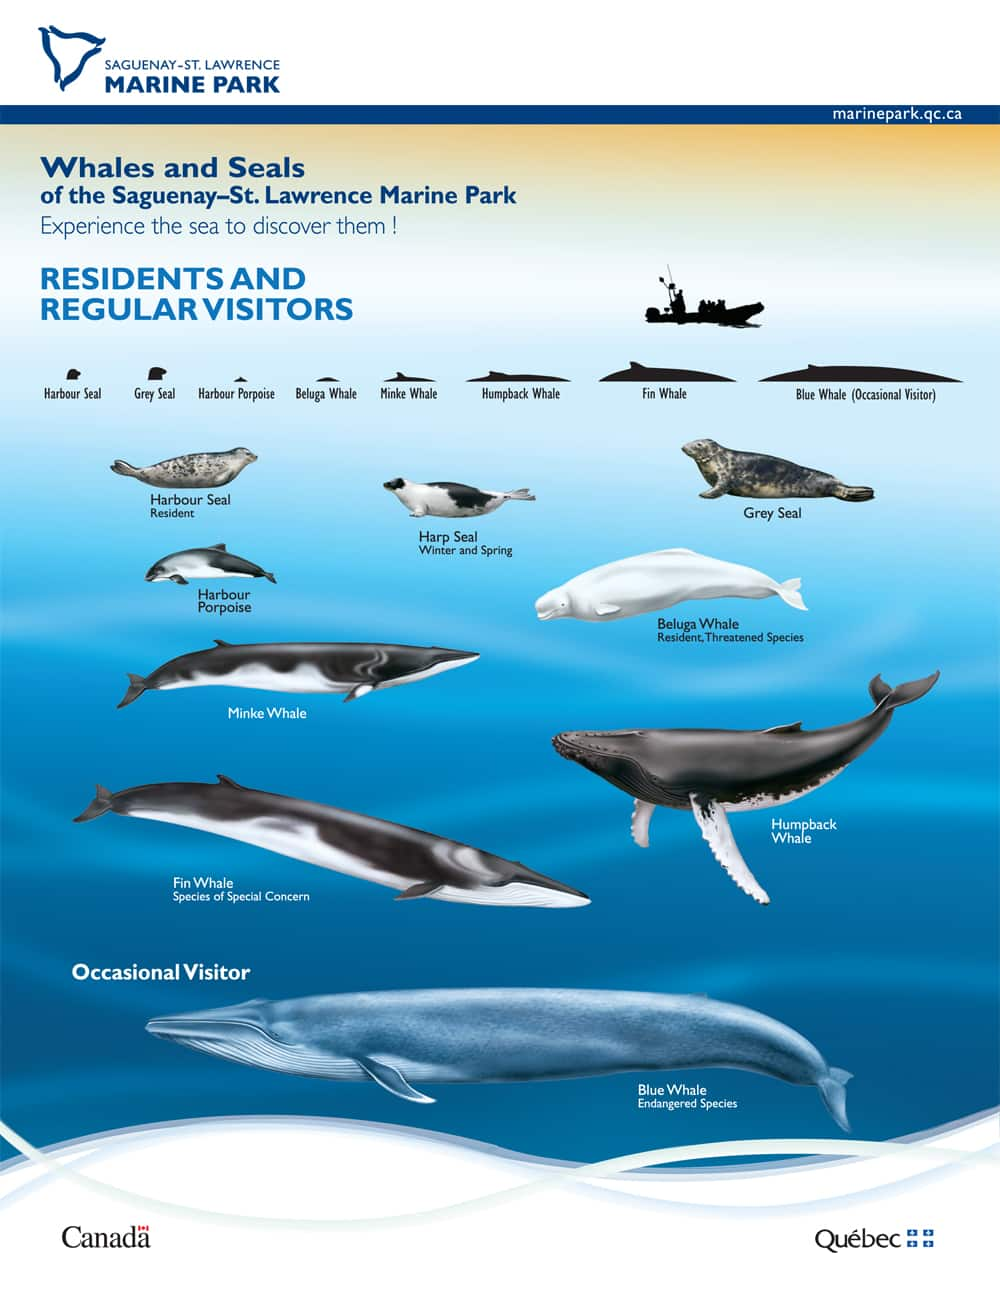 Whales and seals of Saguenay-St. Lawrence Marine Park